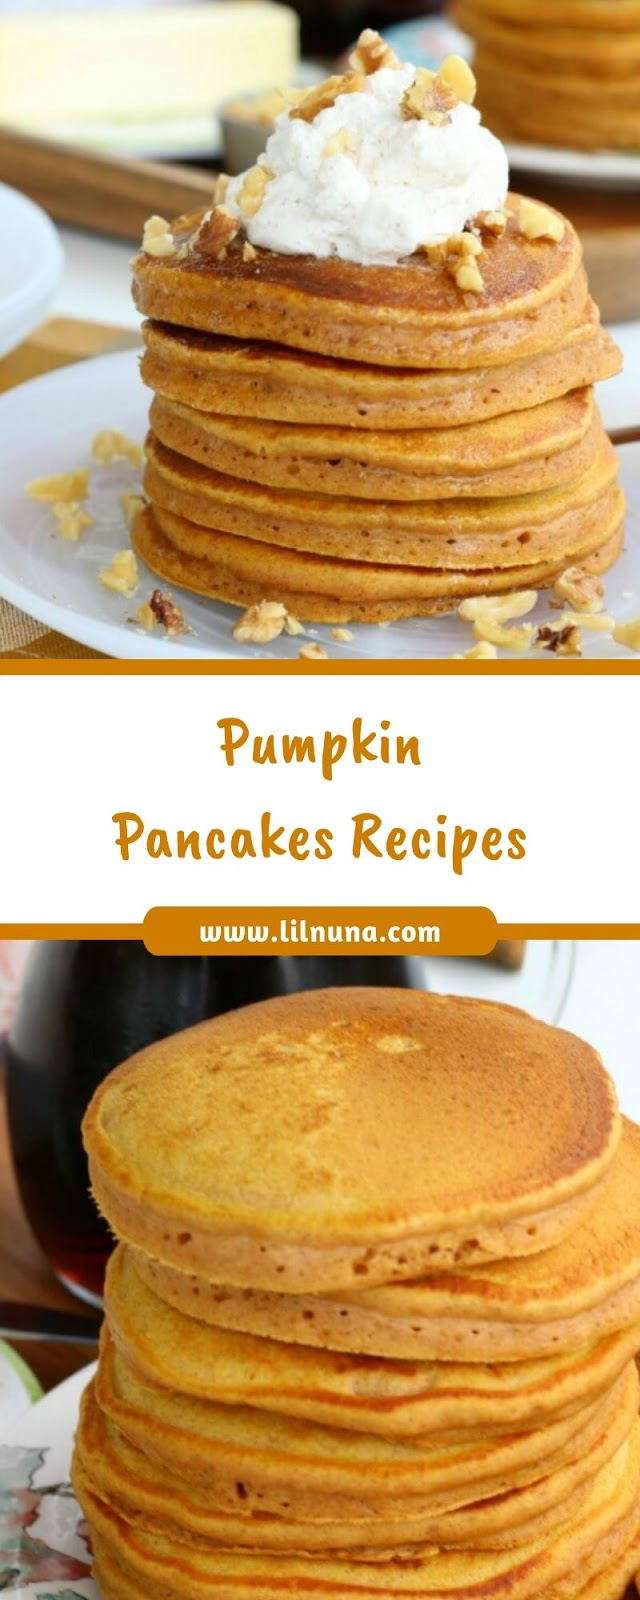 Pumpkin Pancakes Recipes